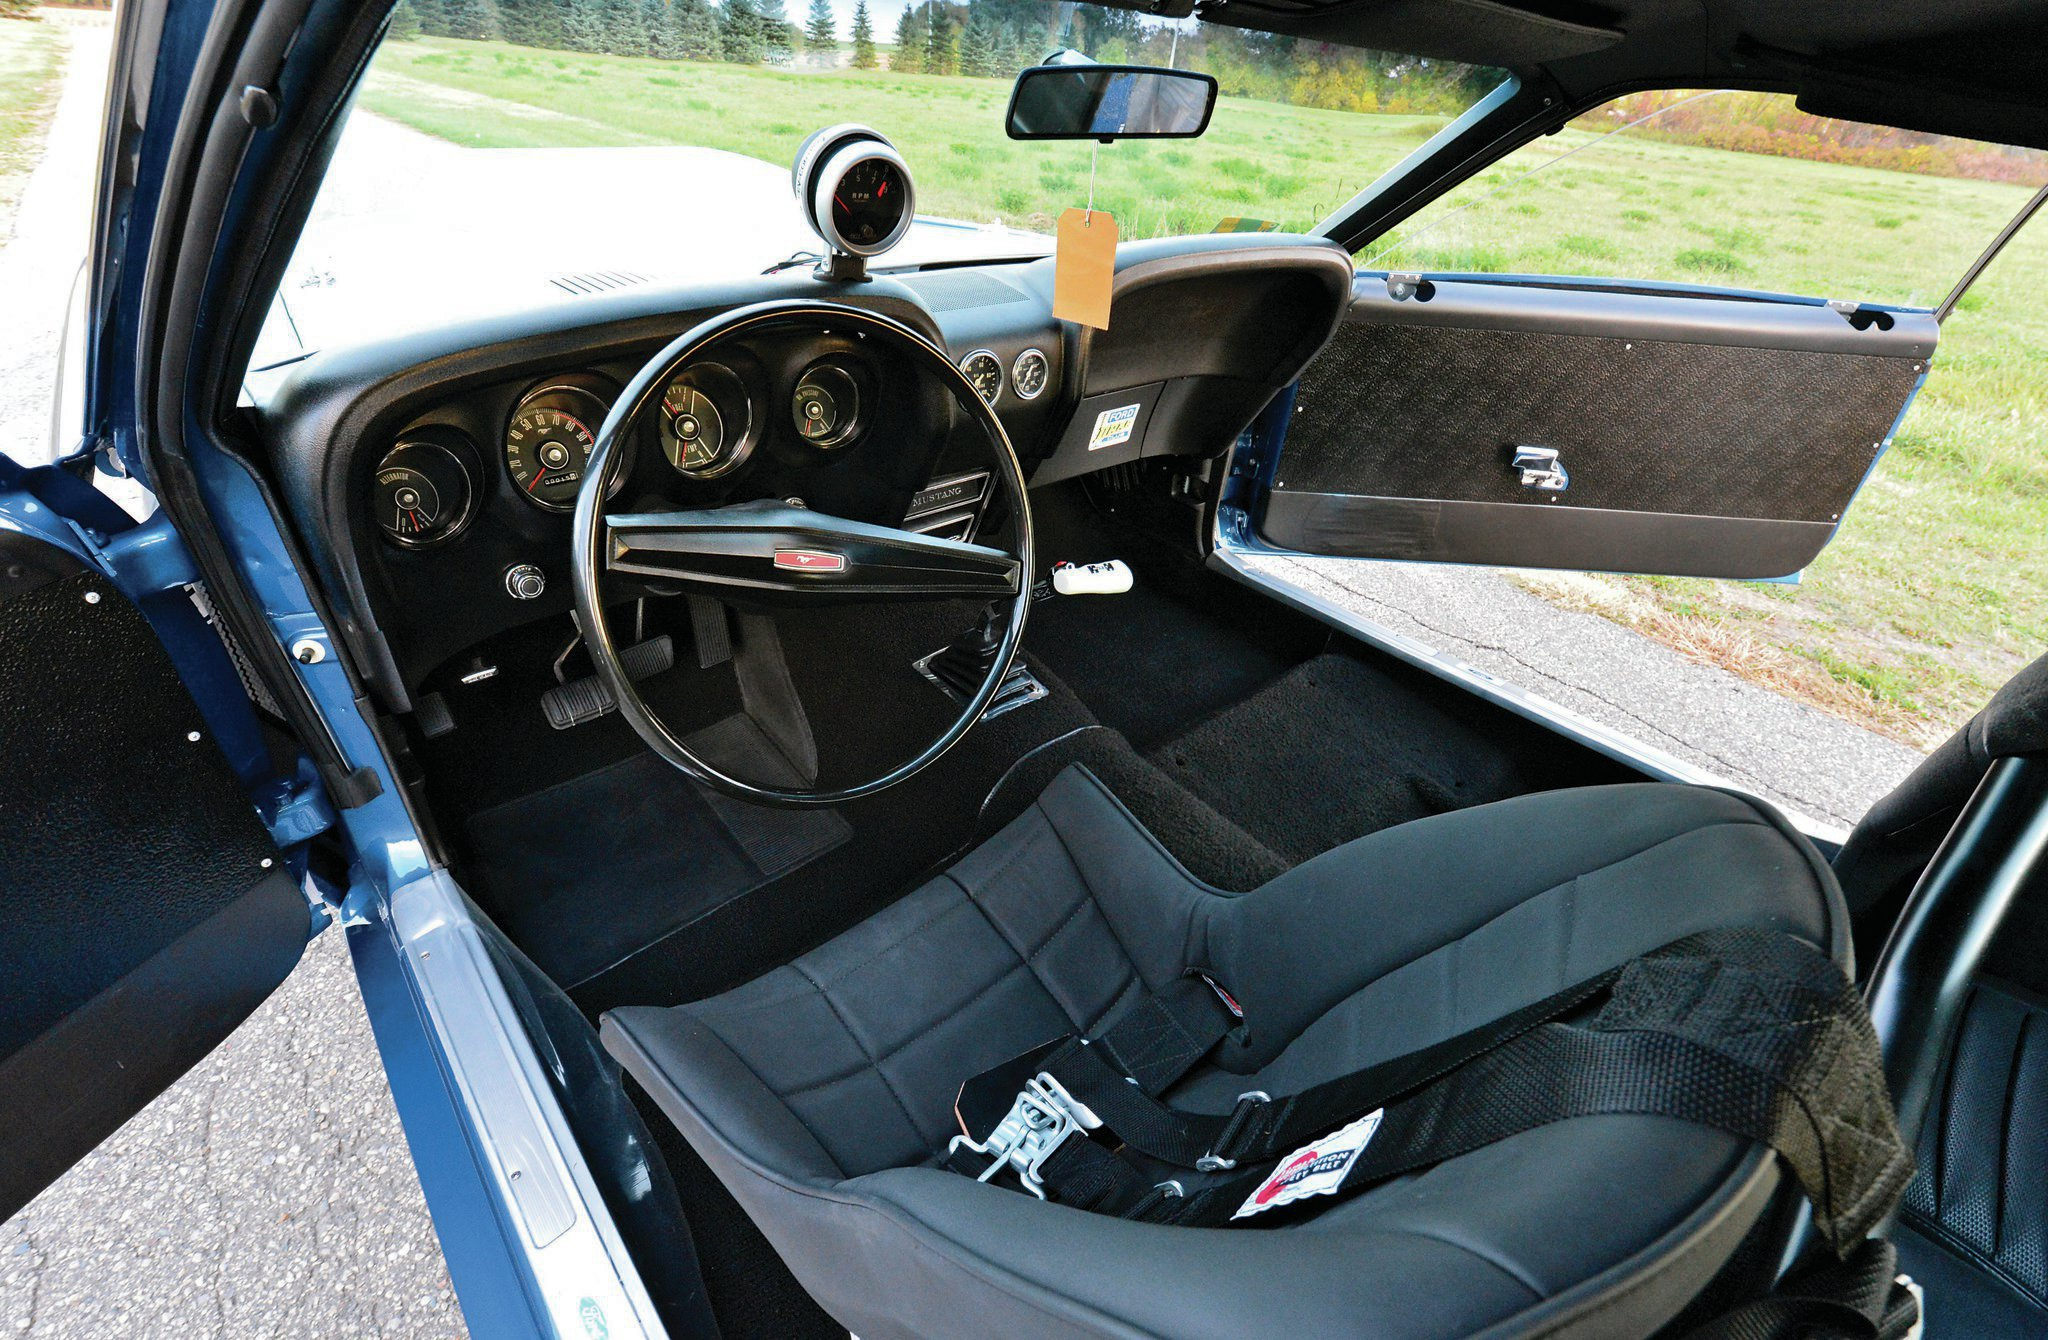 The interior came with Hubert Platt's favorite seat from his previous race Mustang. The Stewart-Warner water temperature and oil pressure gauges were installed by Holman & Moody-Stroppe, as was the original Auto Meter tachometer, which reads to 9,000 rpm with a variable pointer for redline.